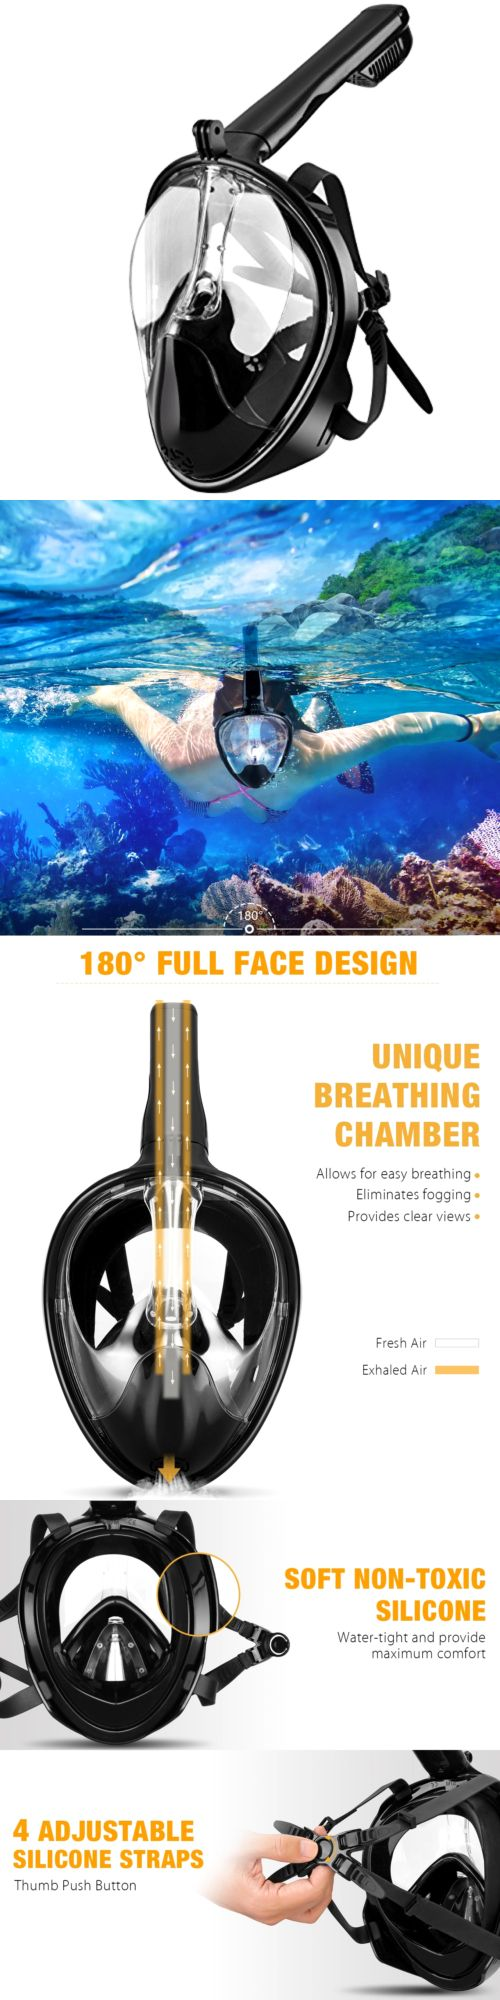 Masks 71161: Tribord Easybreath Snorkeling Mask Diving Full Face180 For Men Women Youth Teen -> BUY IT NOW ONLY: $46.9 on eBay!